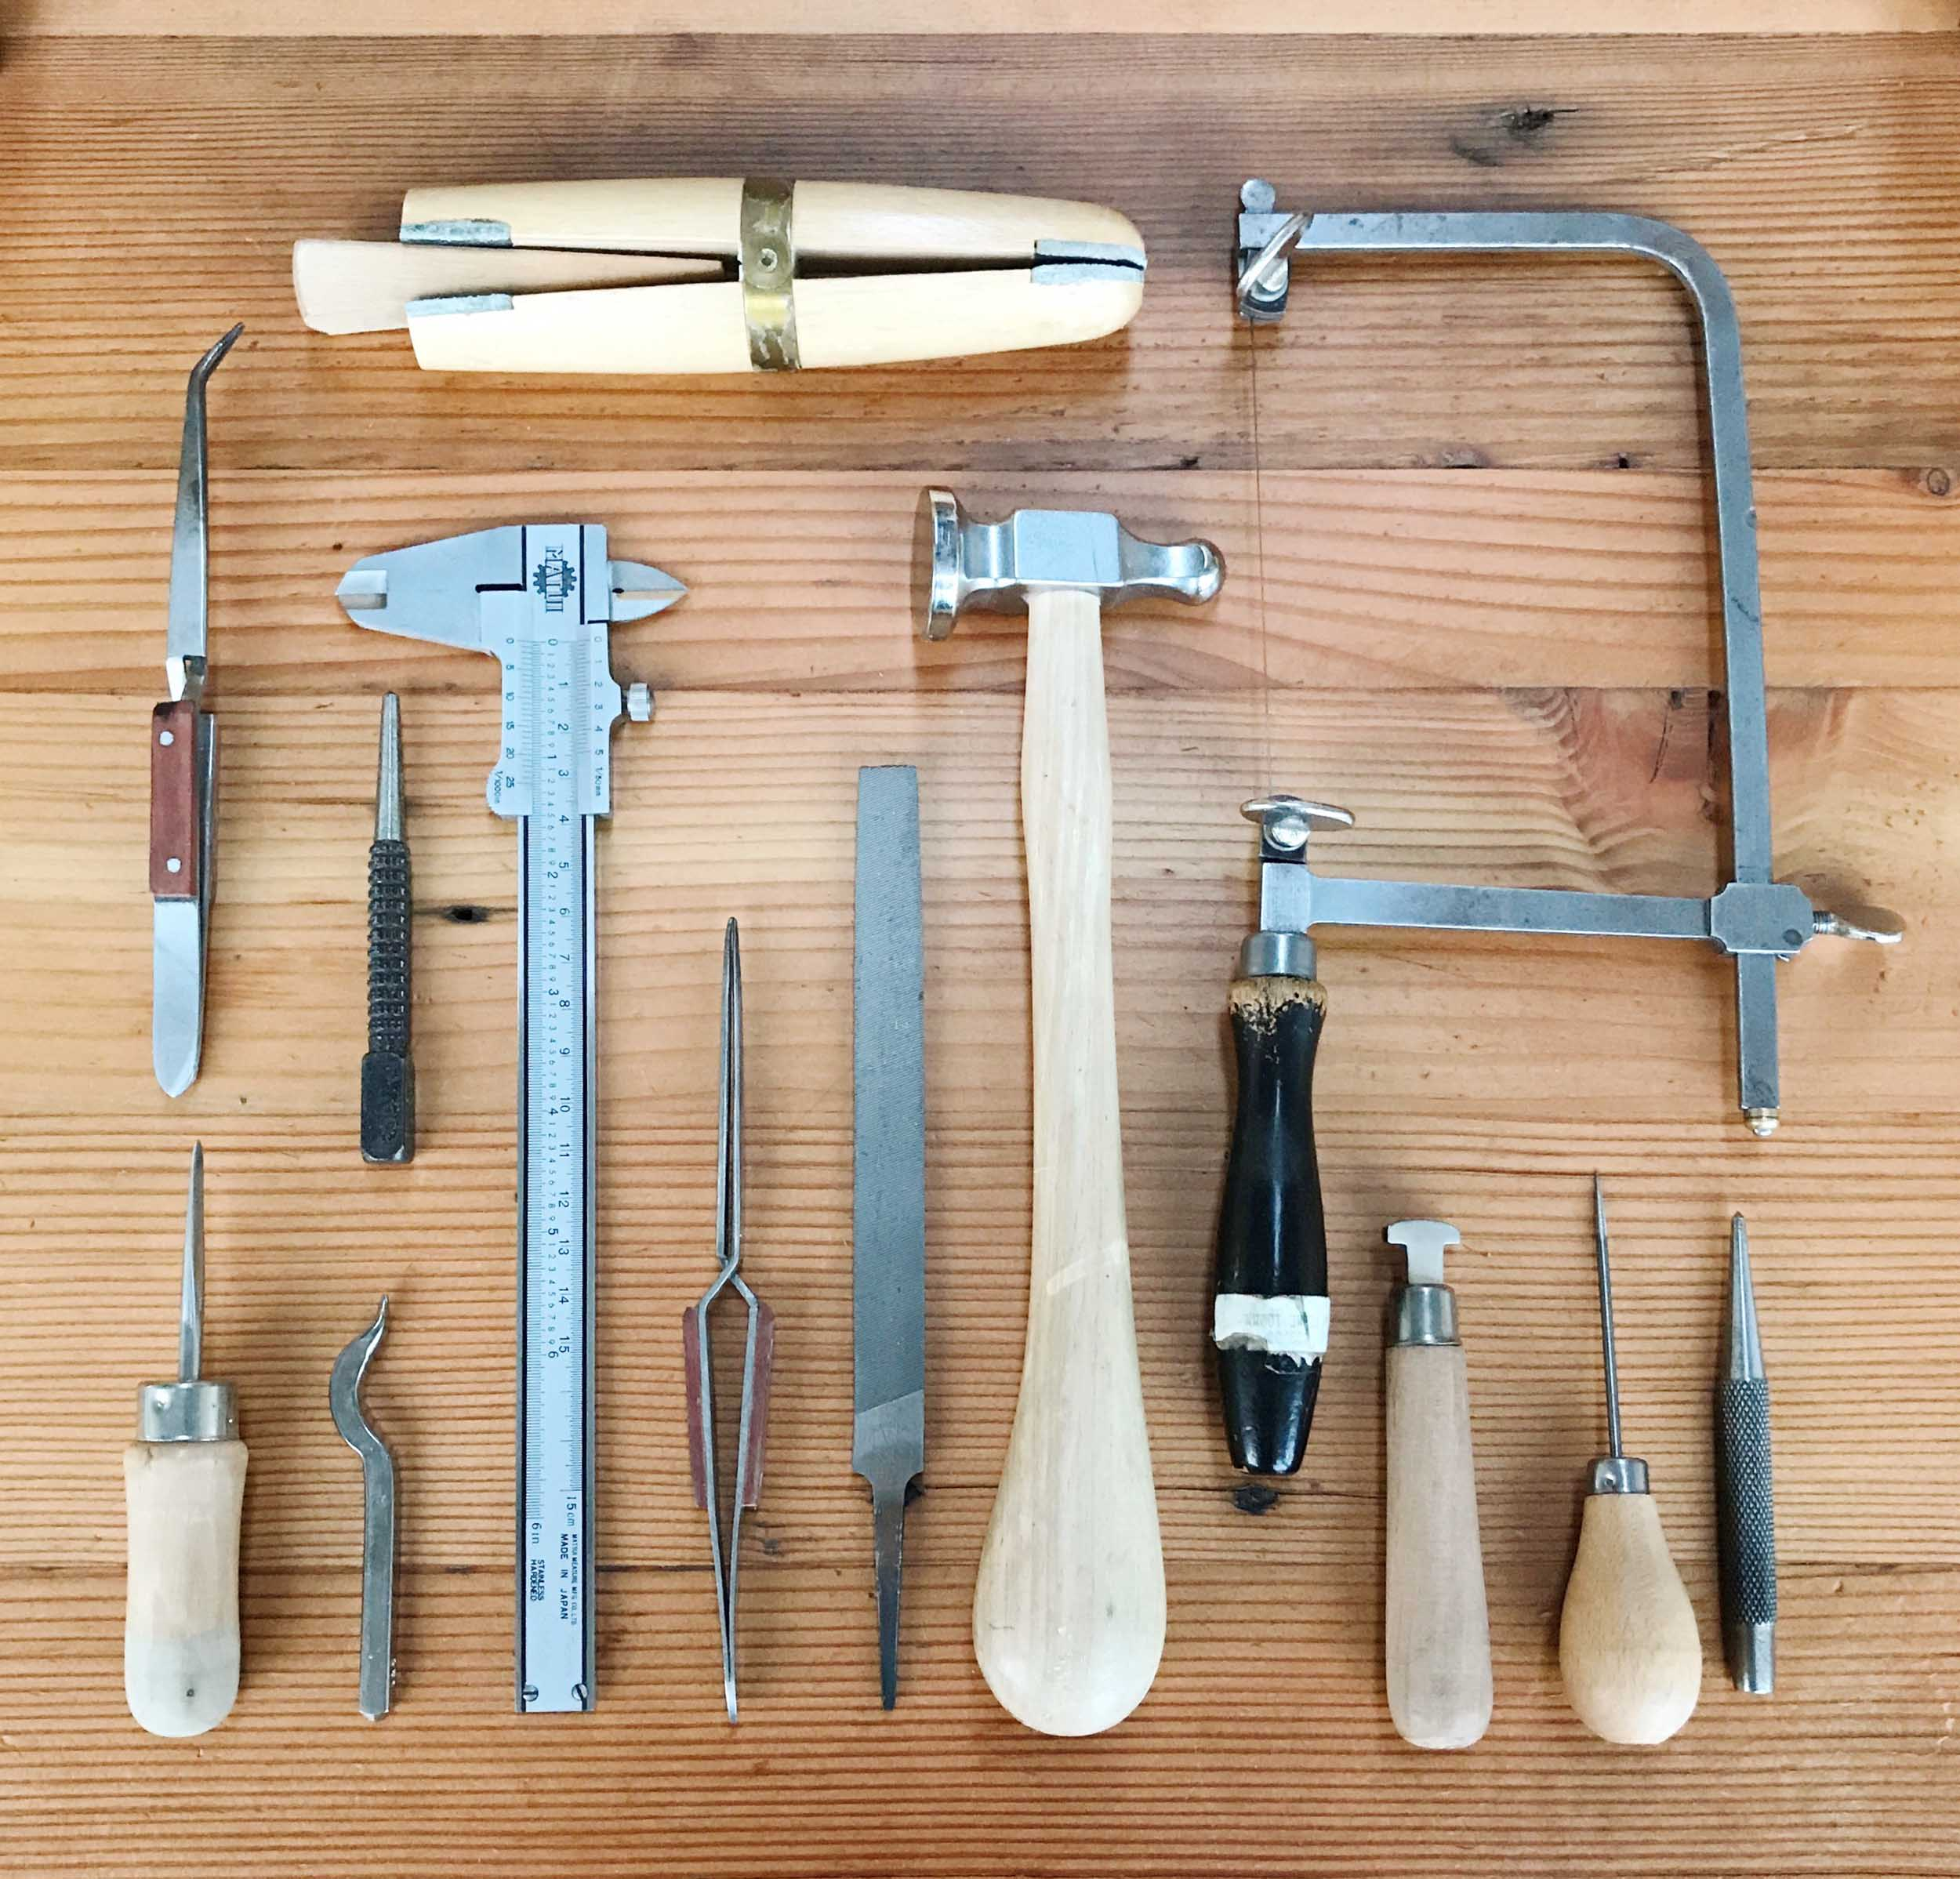 I can't wait to build on my growing collection of precision tools for my students to learn with. When making jewellery, good tools are absolutely crucial. Whoever said that a poor workman blames his (or her) tools obviously hasn't tried to mitre a perfect corner with a blunt file!